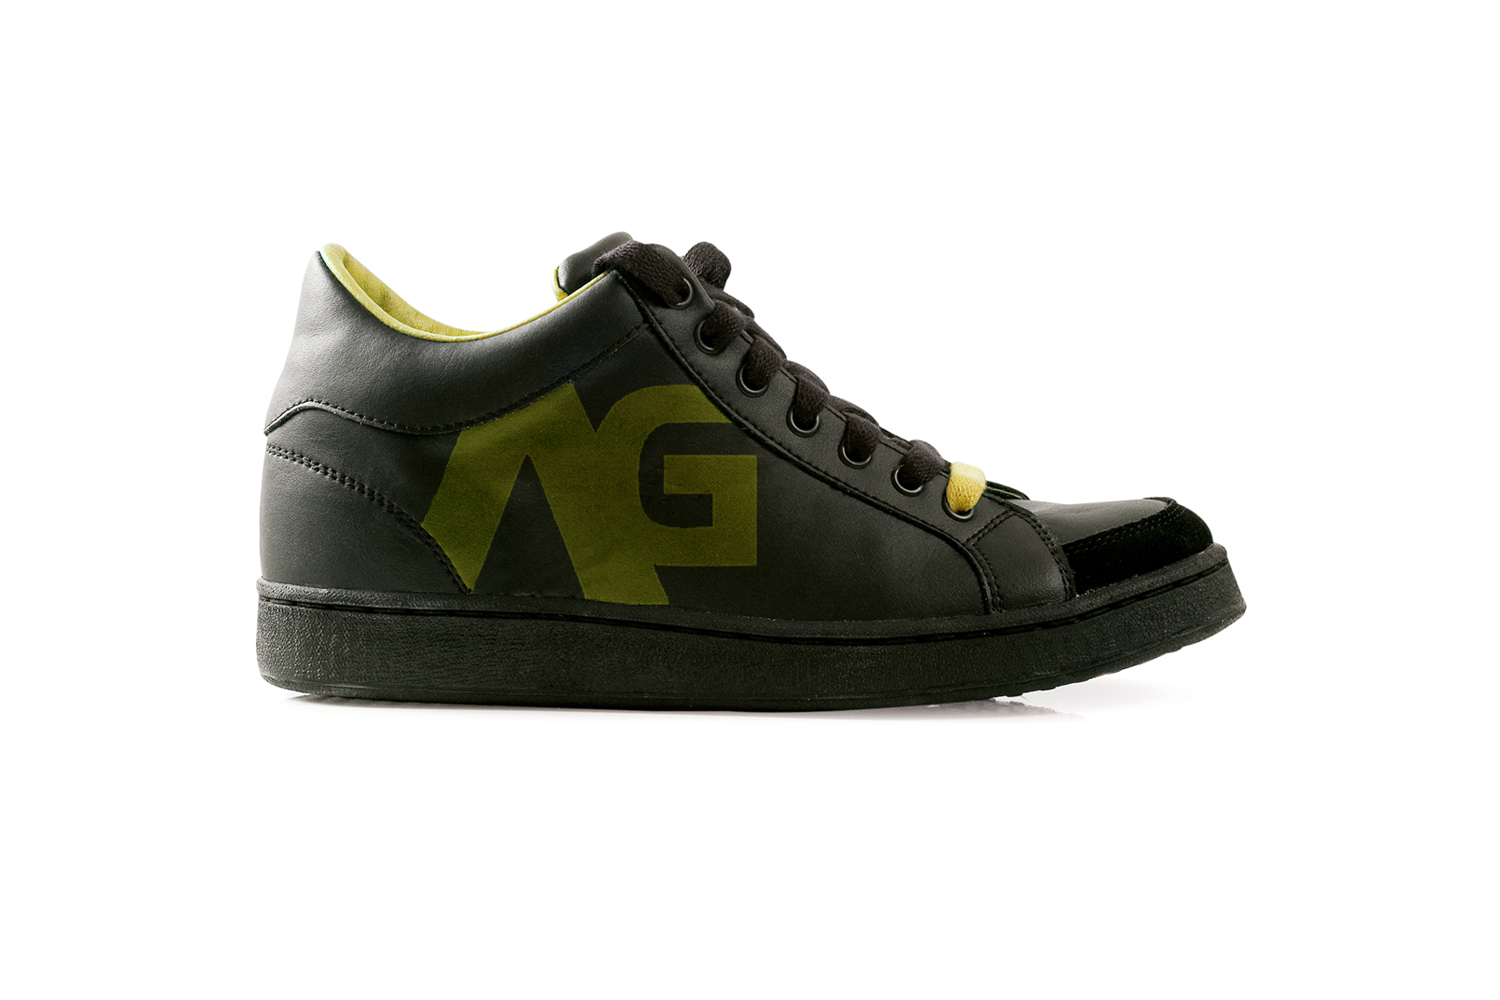 ANOLOG_CLOTHING_menswear_skate_shoe.jpg